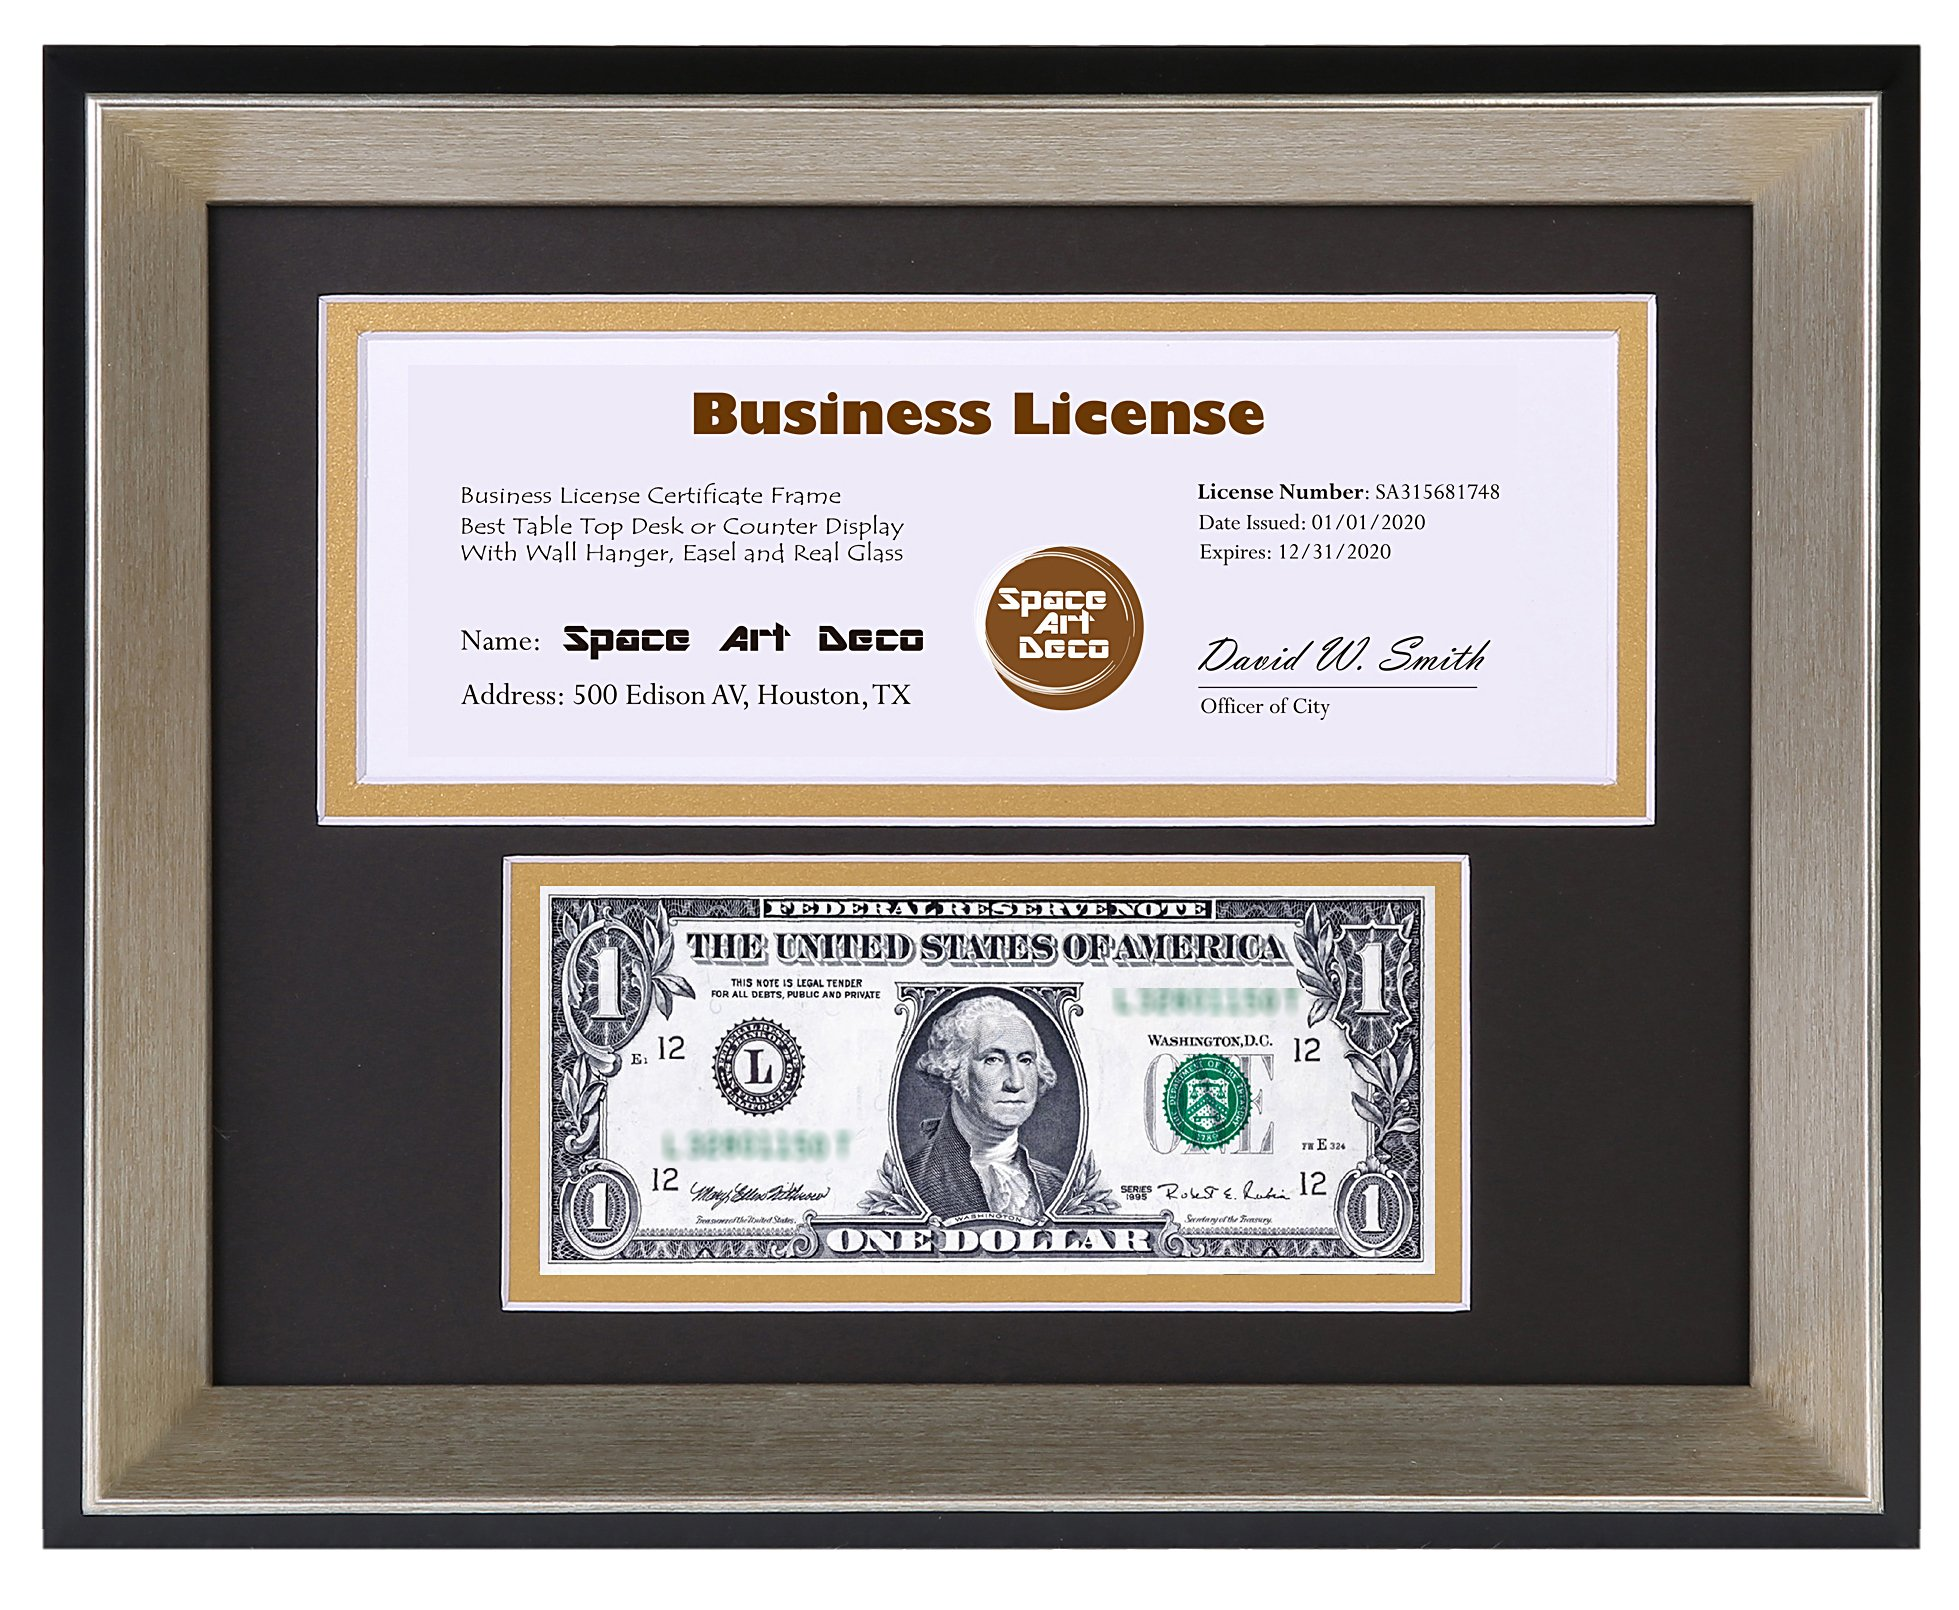 8.5x11 Black Frame with Silver Beveled Edge- Black over Gold Double Mat with Two Openings- First Dollar - Certificate/License Frame- Easel Stand - Sawtooth Hanger - Wall Mount (8.5x11, Black/Silver)